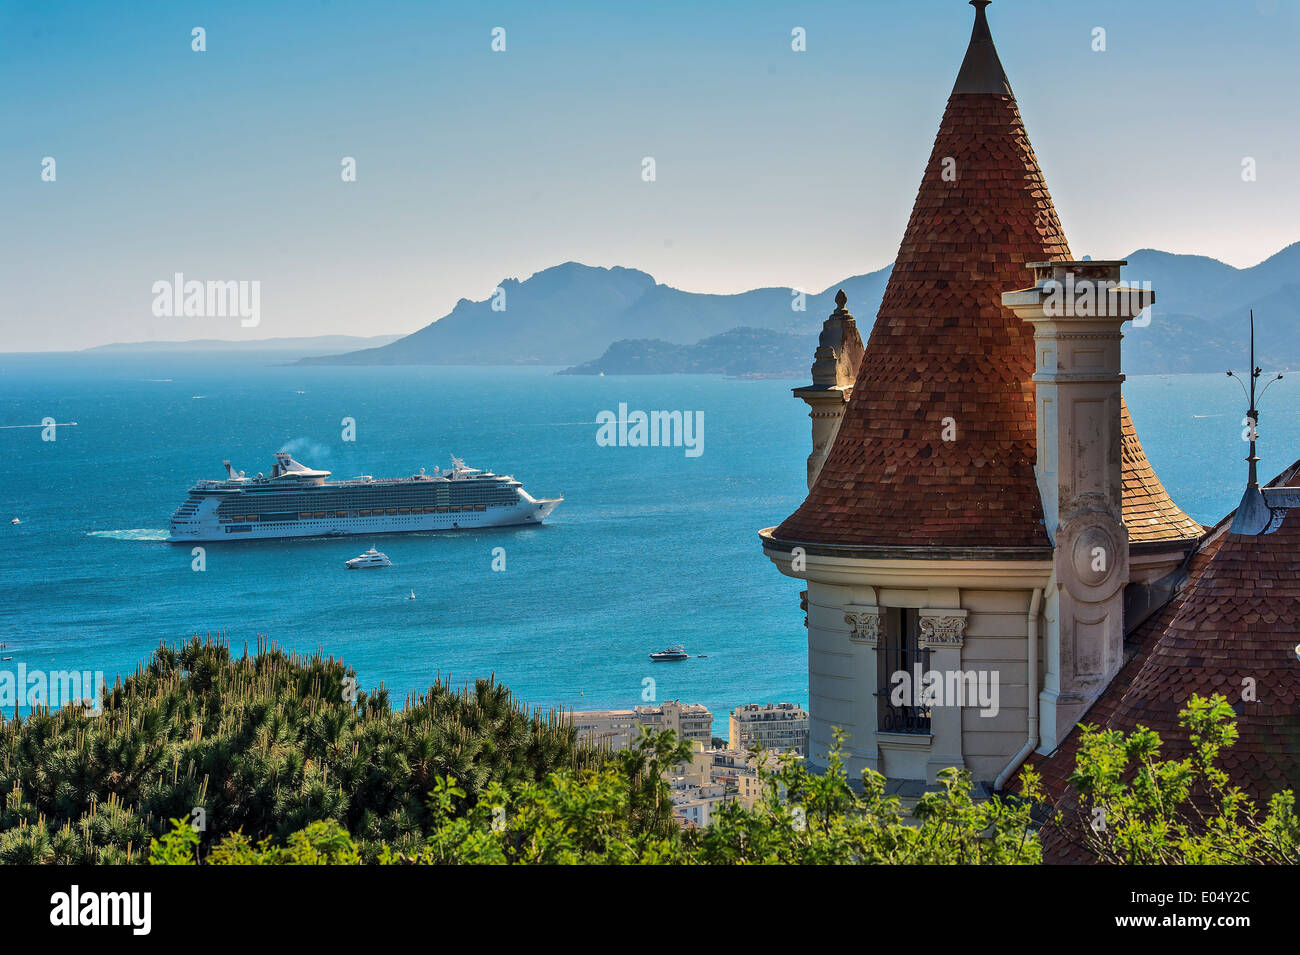 Europe, France, Alpes-Maritimes, Cannes. Cruise ship in a bay of Cannes. - Stock Image